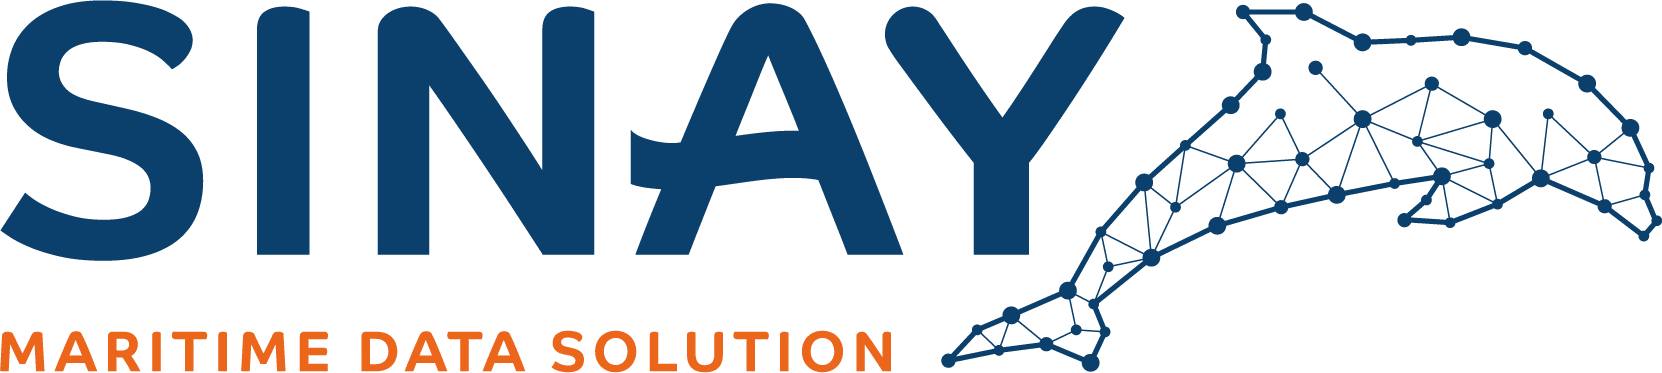 The Sinay logo representing a dolphin